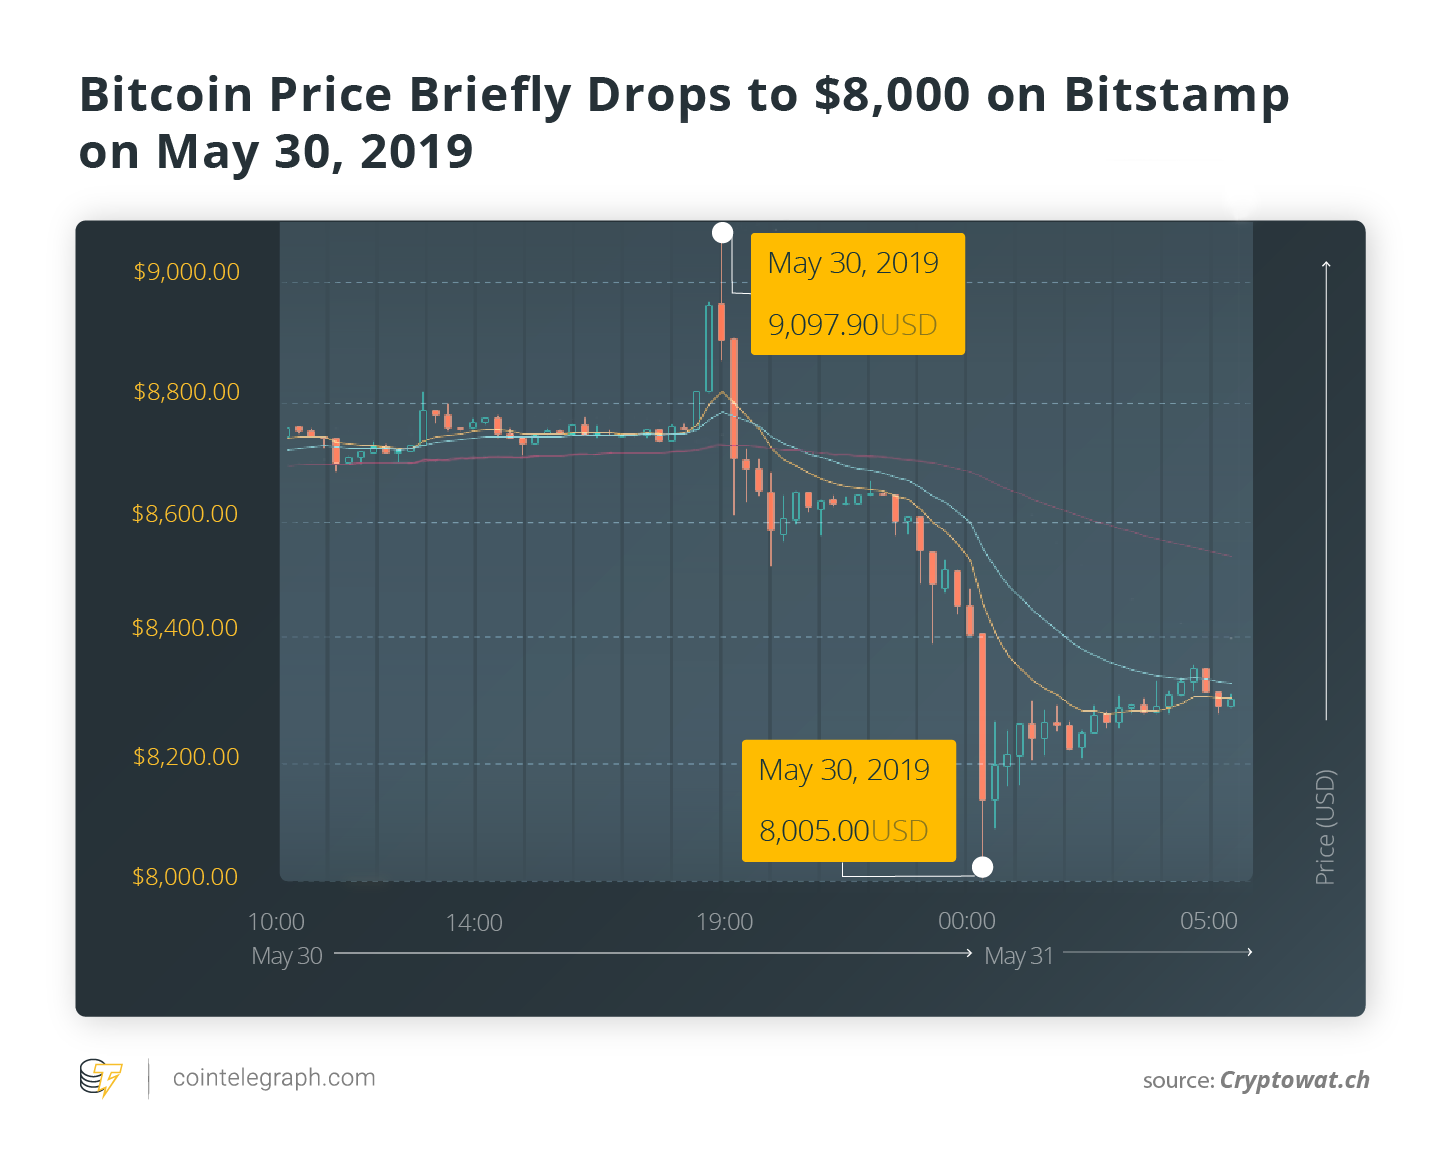 Bitcoin Price Briefly Drops to $8,000 on Bitstamp on May 30, 2019